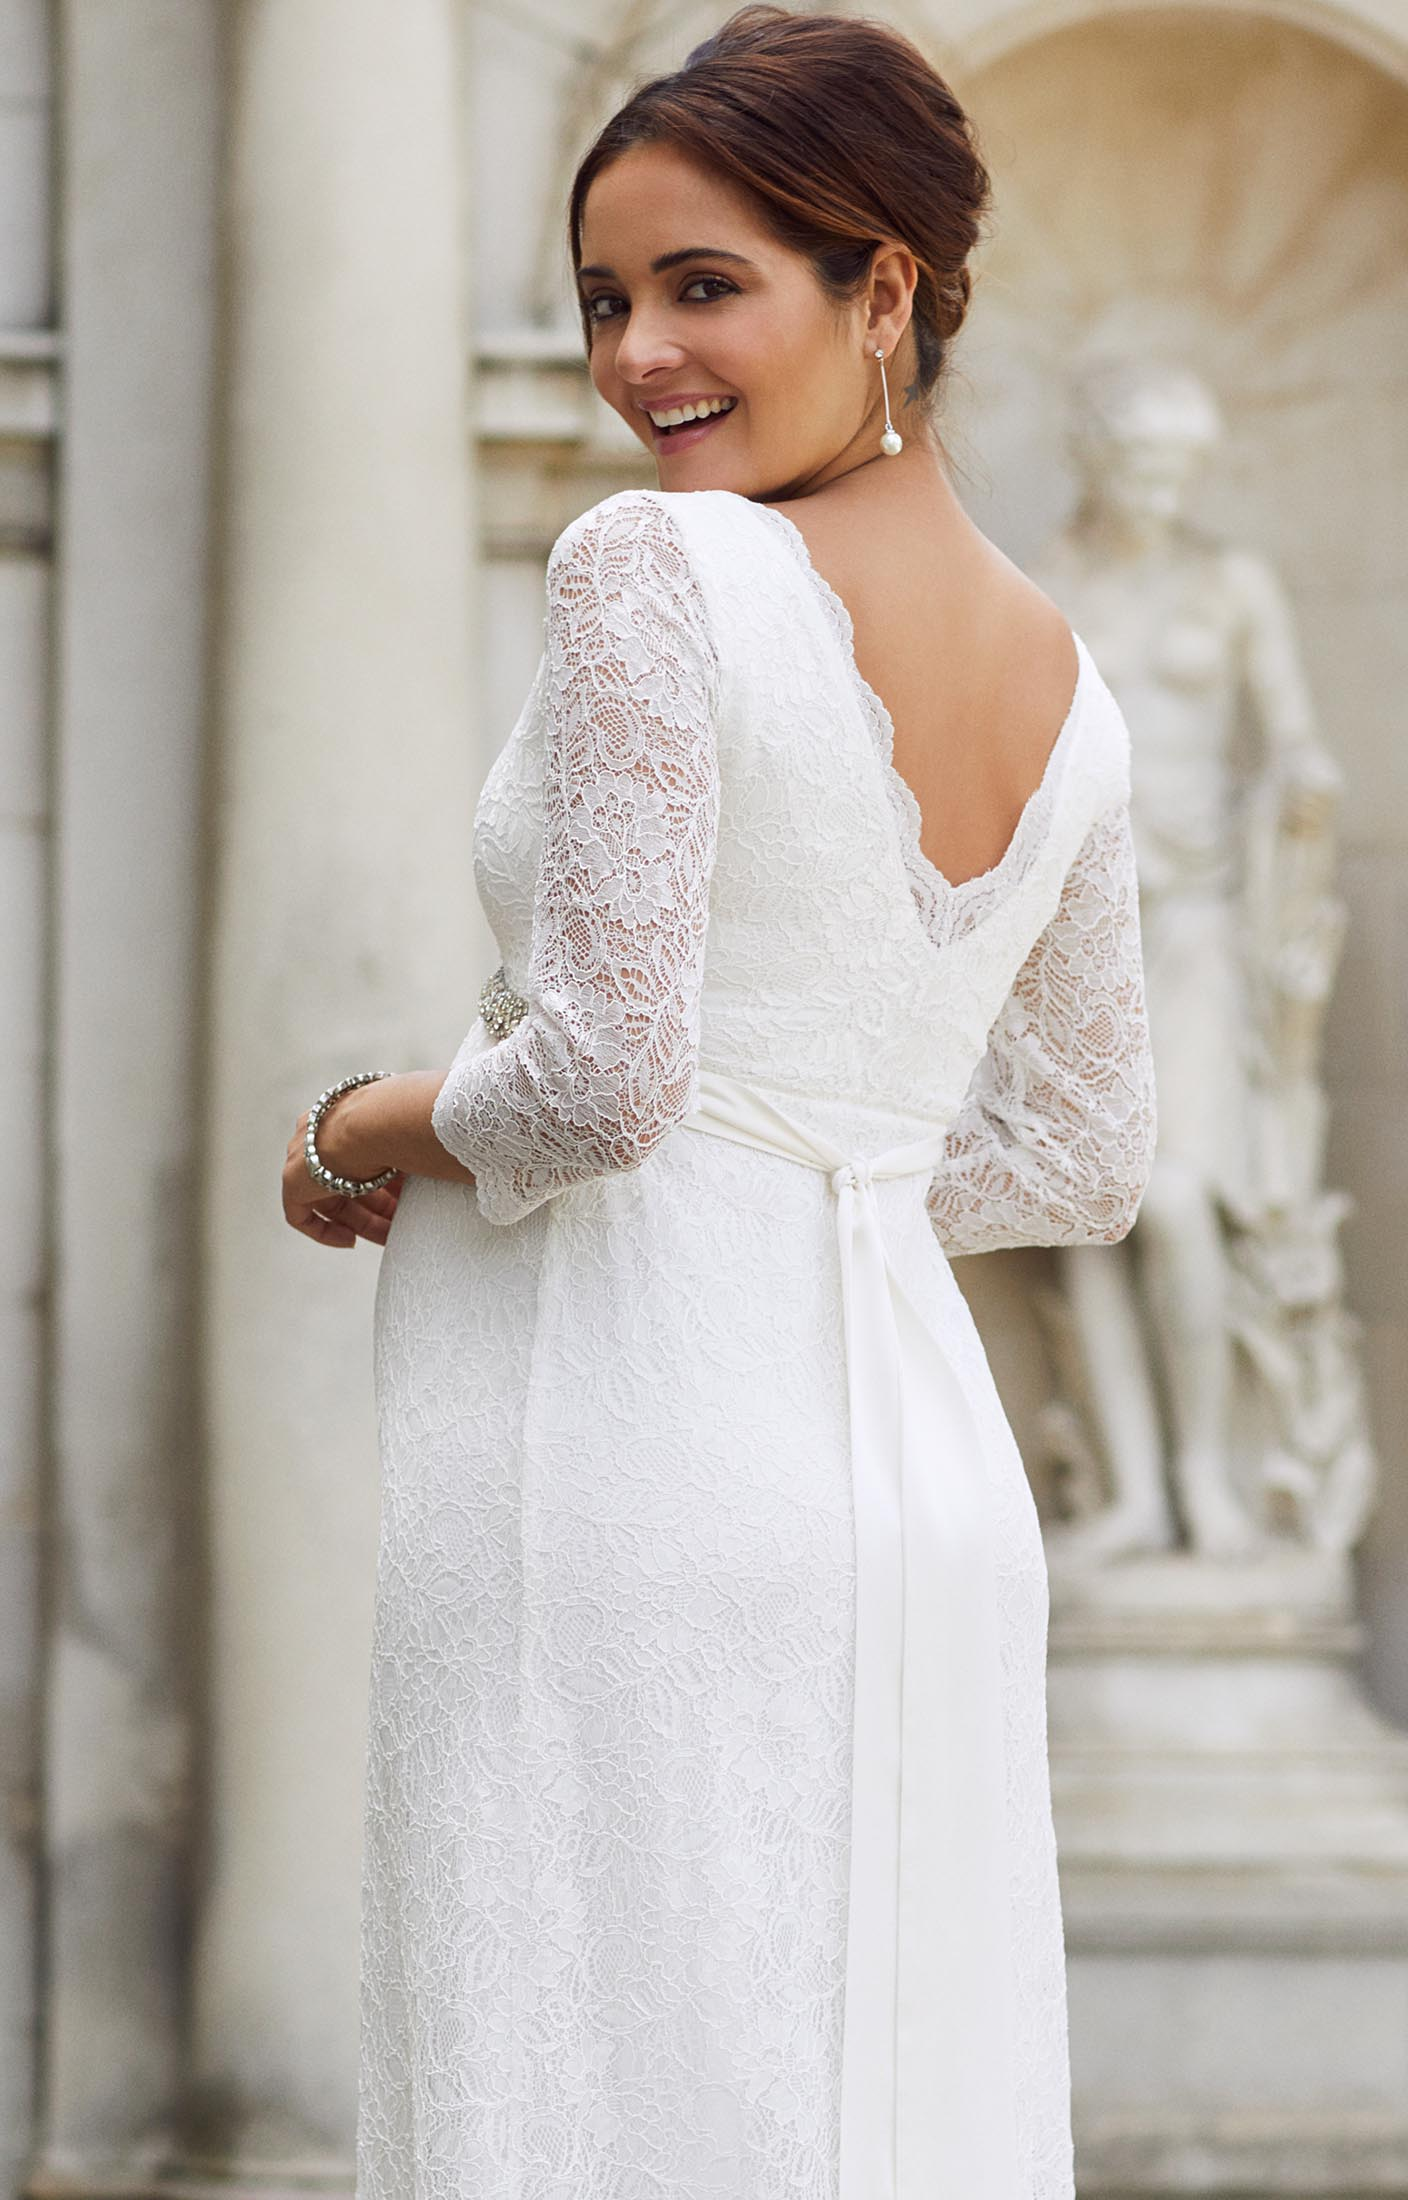 9ab91506804a2 Chloe Lace Maternity Wedding Gown Ivory - Maternity Wedding Dresses,  Evening Wear and Party Clothes by Tiffany Rose IE